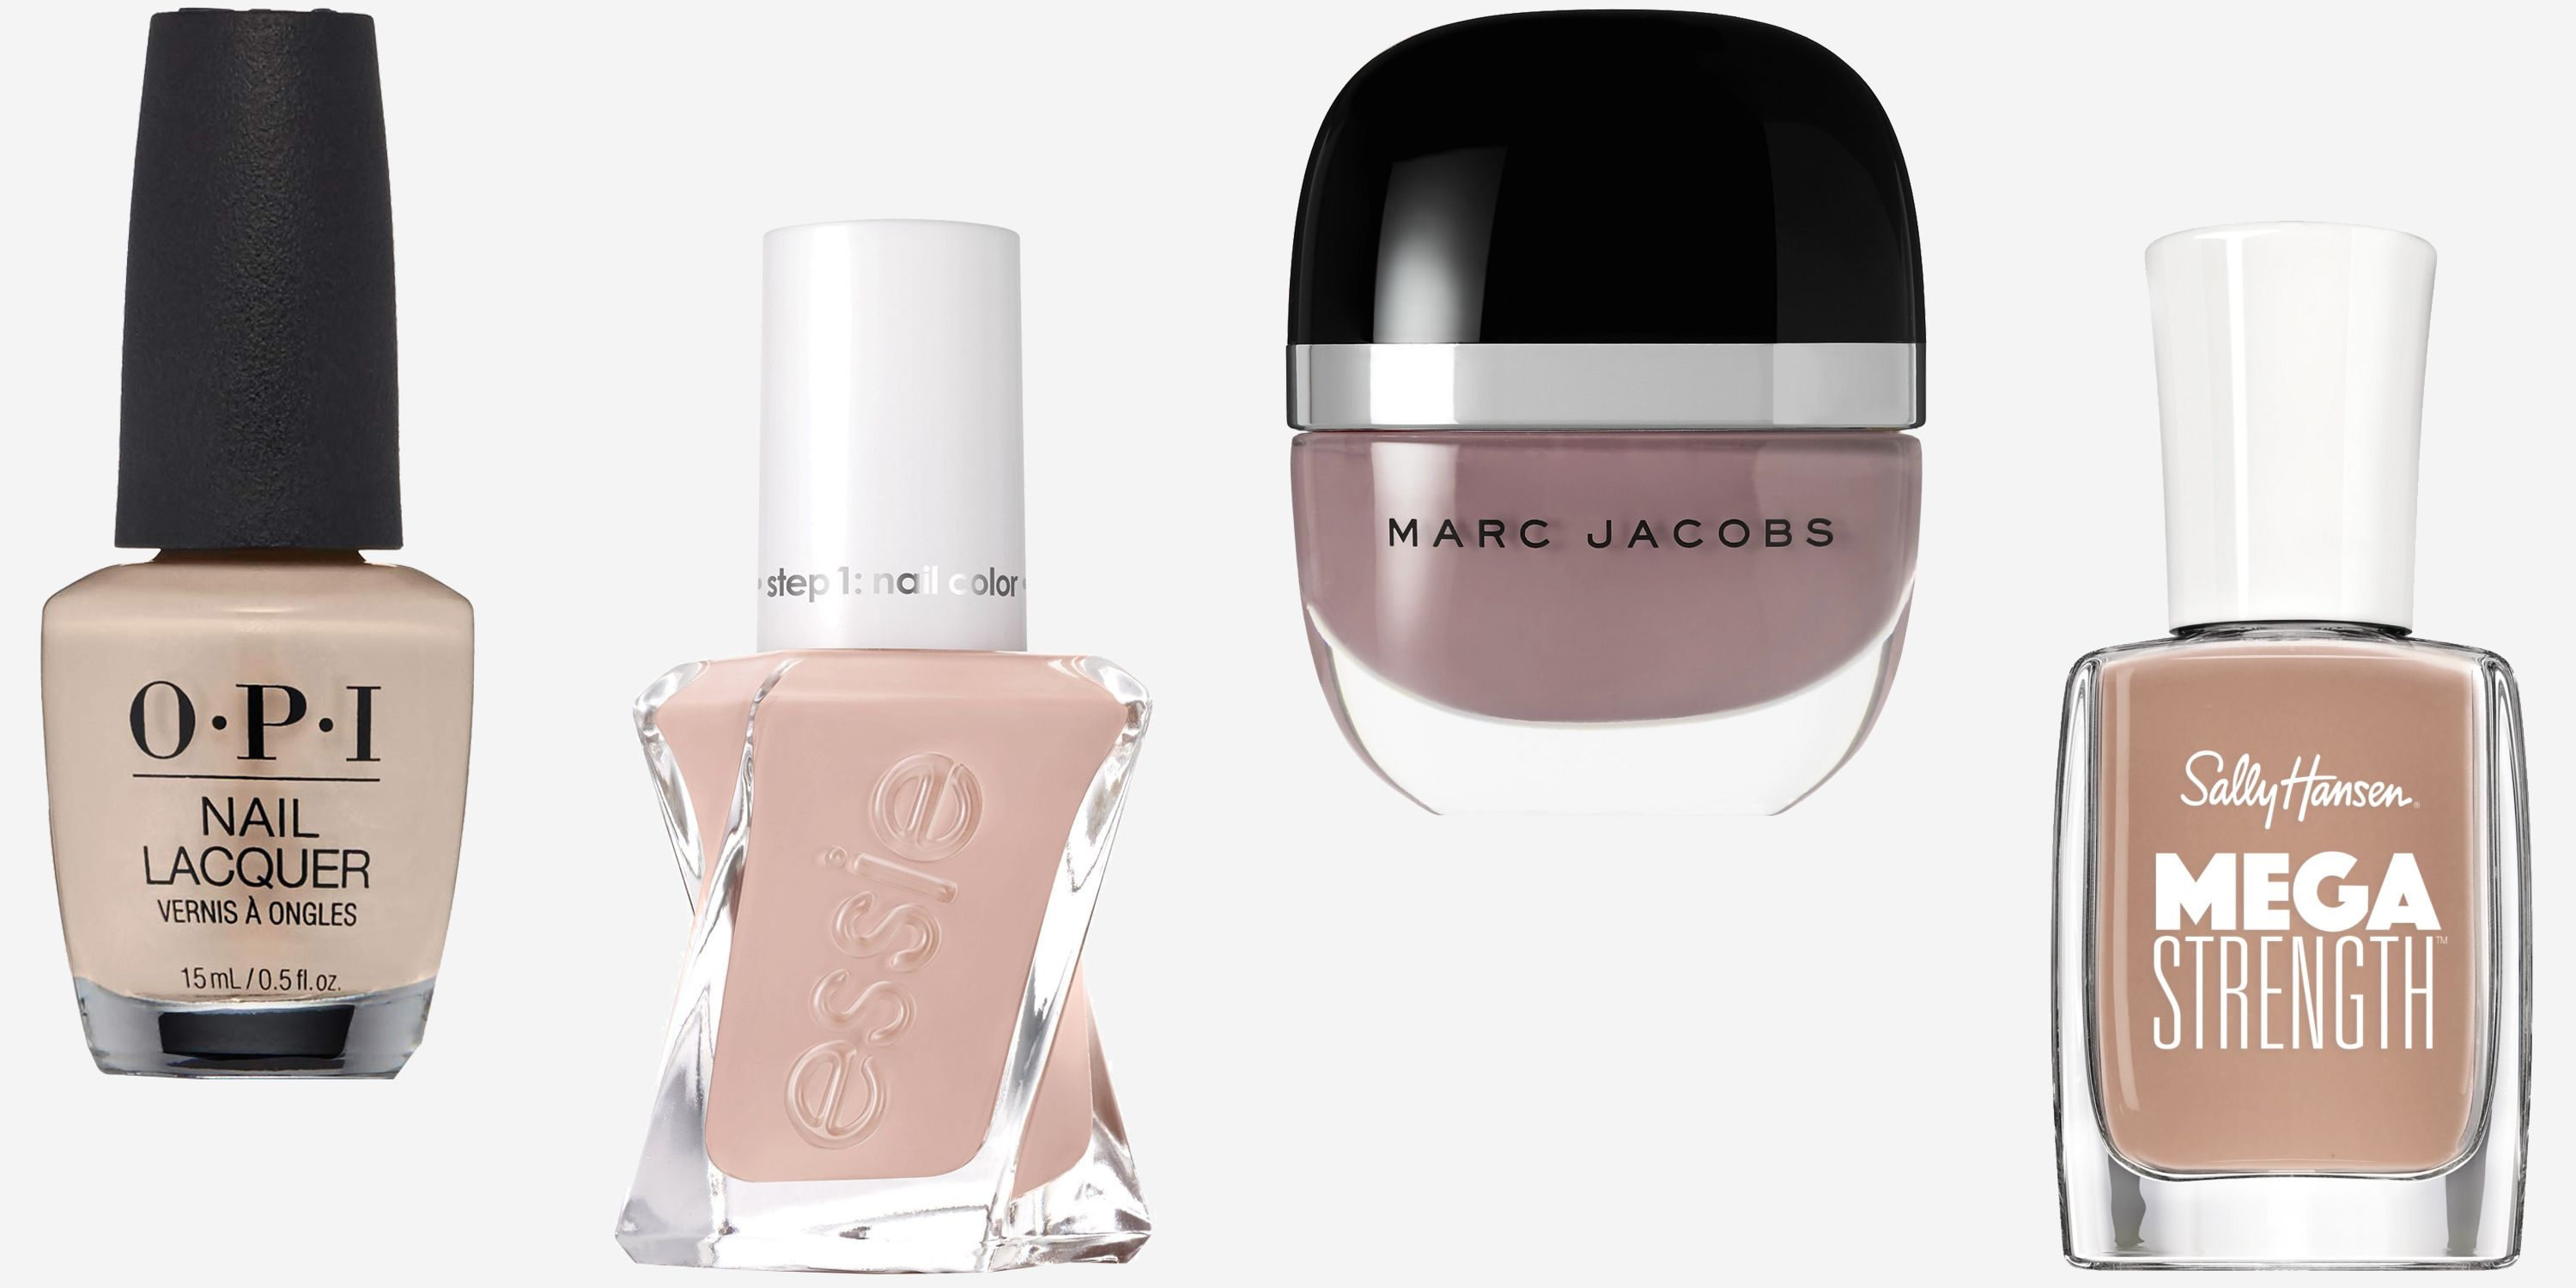 12 Best Nude Nail Polish Colors - Neutral Nail Colors for Every Skin ...